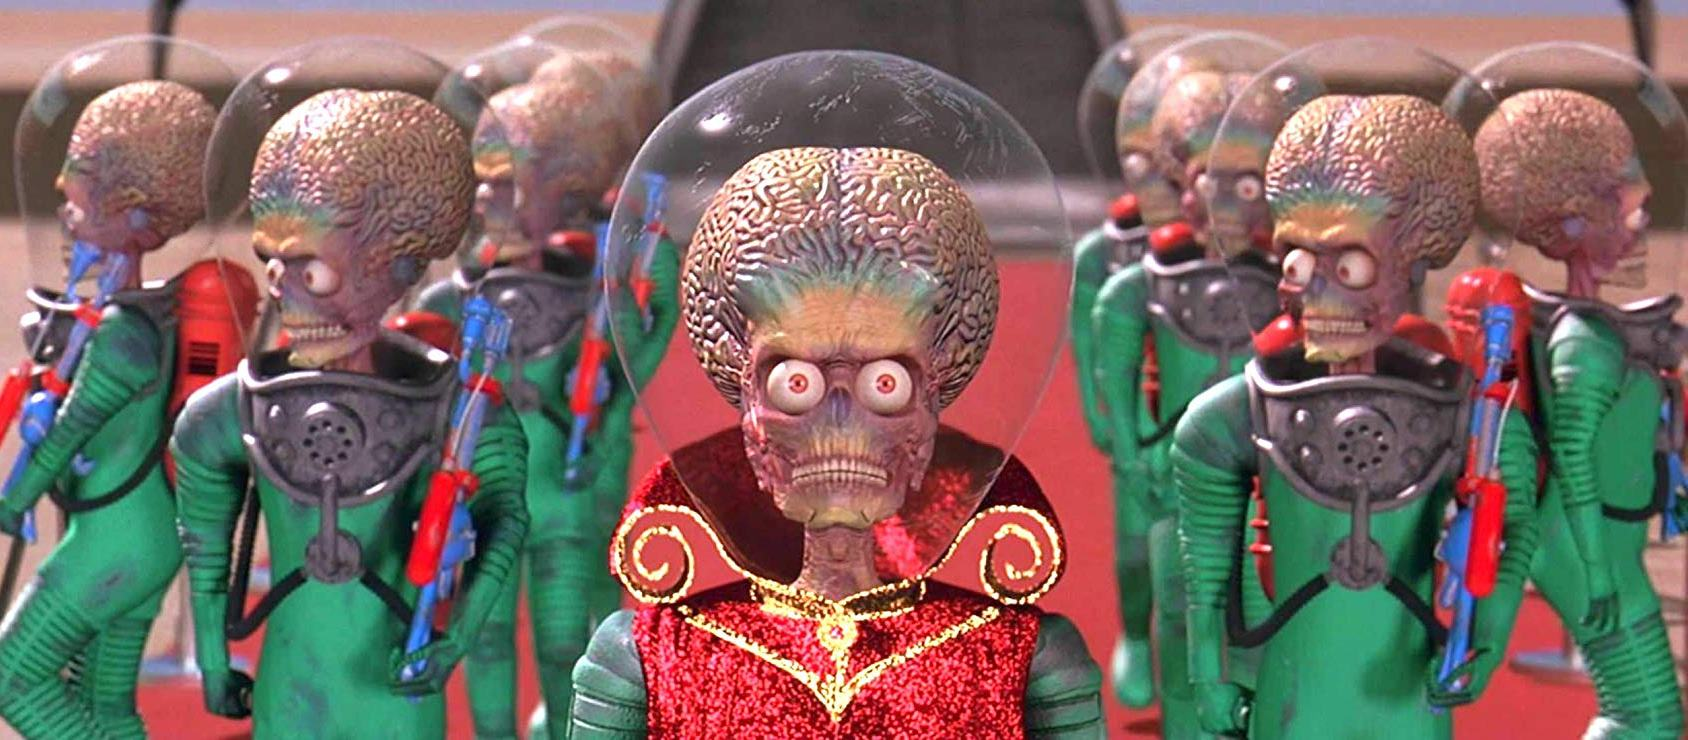 The Martians arrives on Earth in Mars Attacks! (1996)